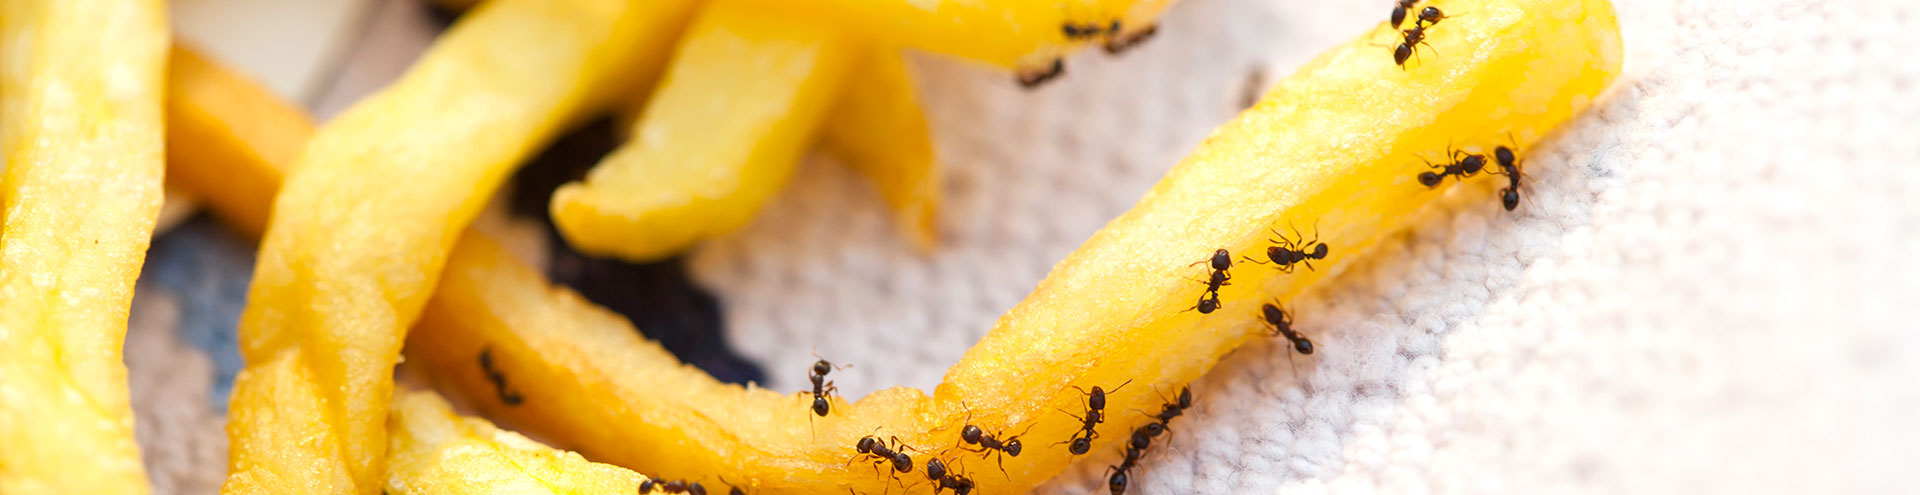 pest-ants-eating-french-fries